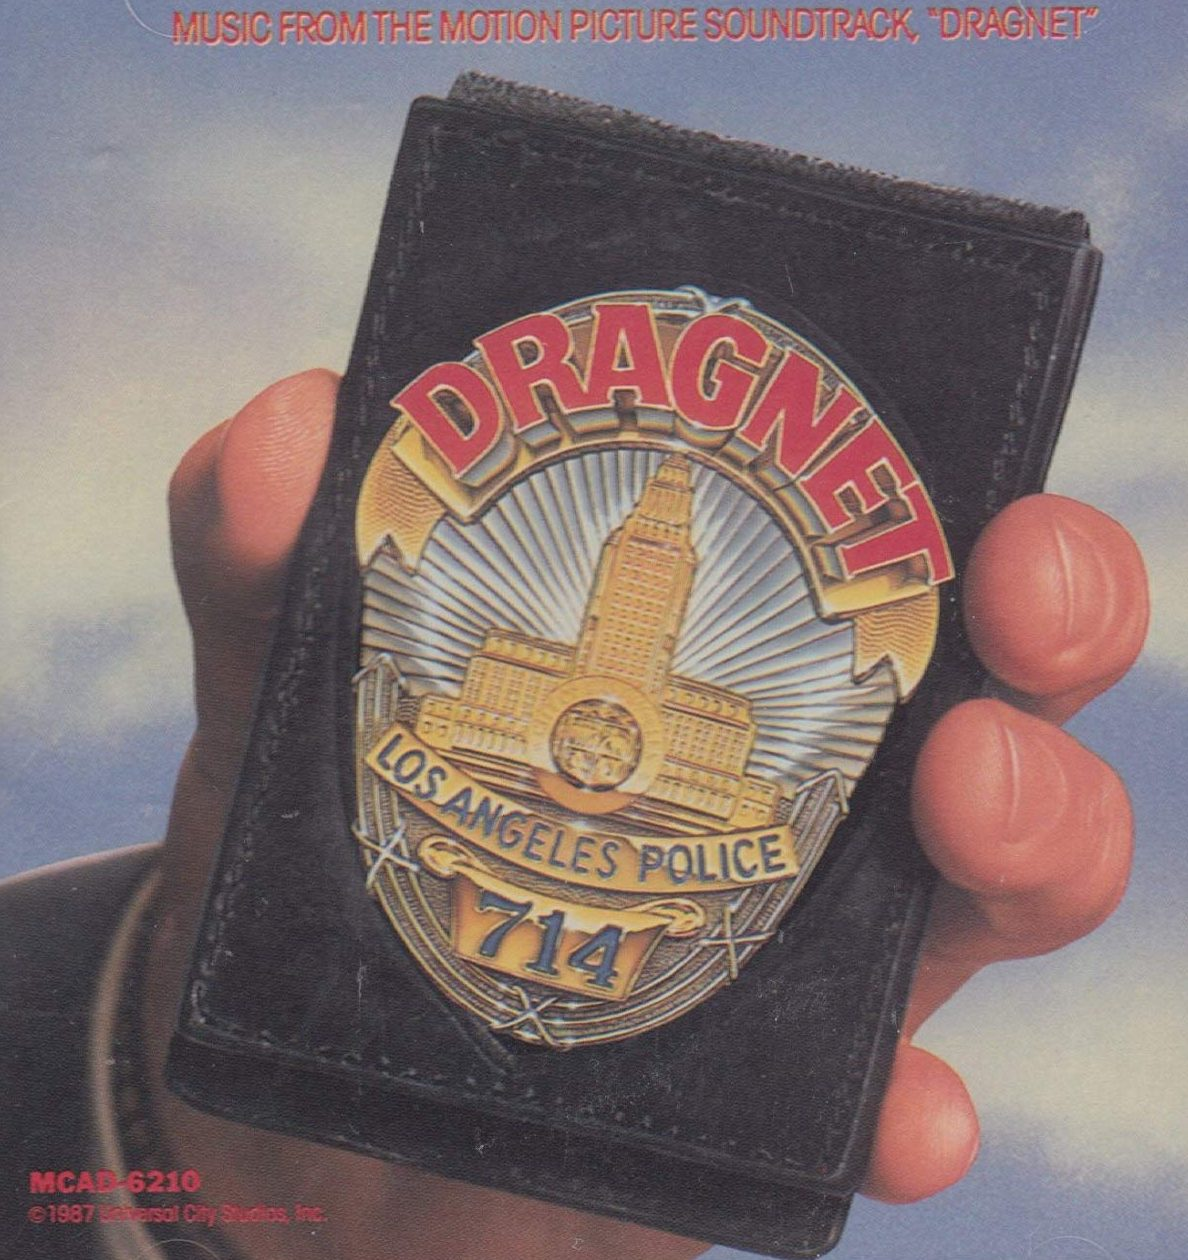 818OZbG54ML. SL1500 e1581512259345 Just The Facts (20 Of Them) About Dan Aykroyd And Tom Hanks' Dragnet